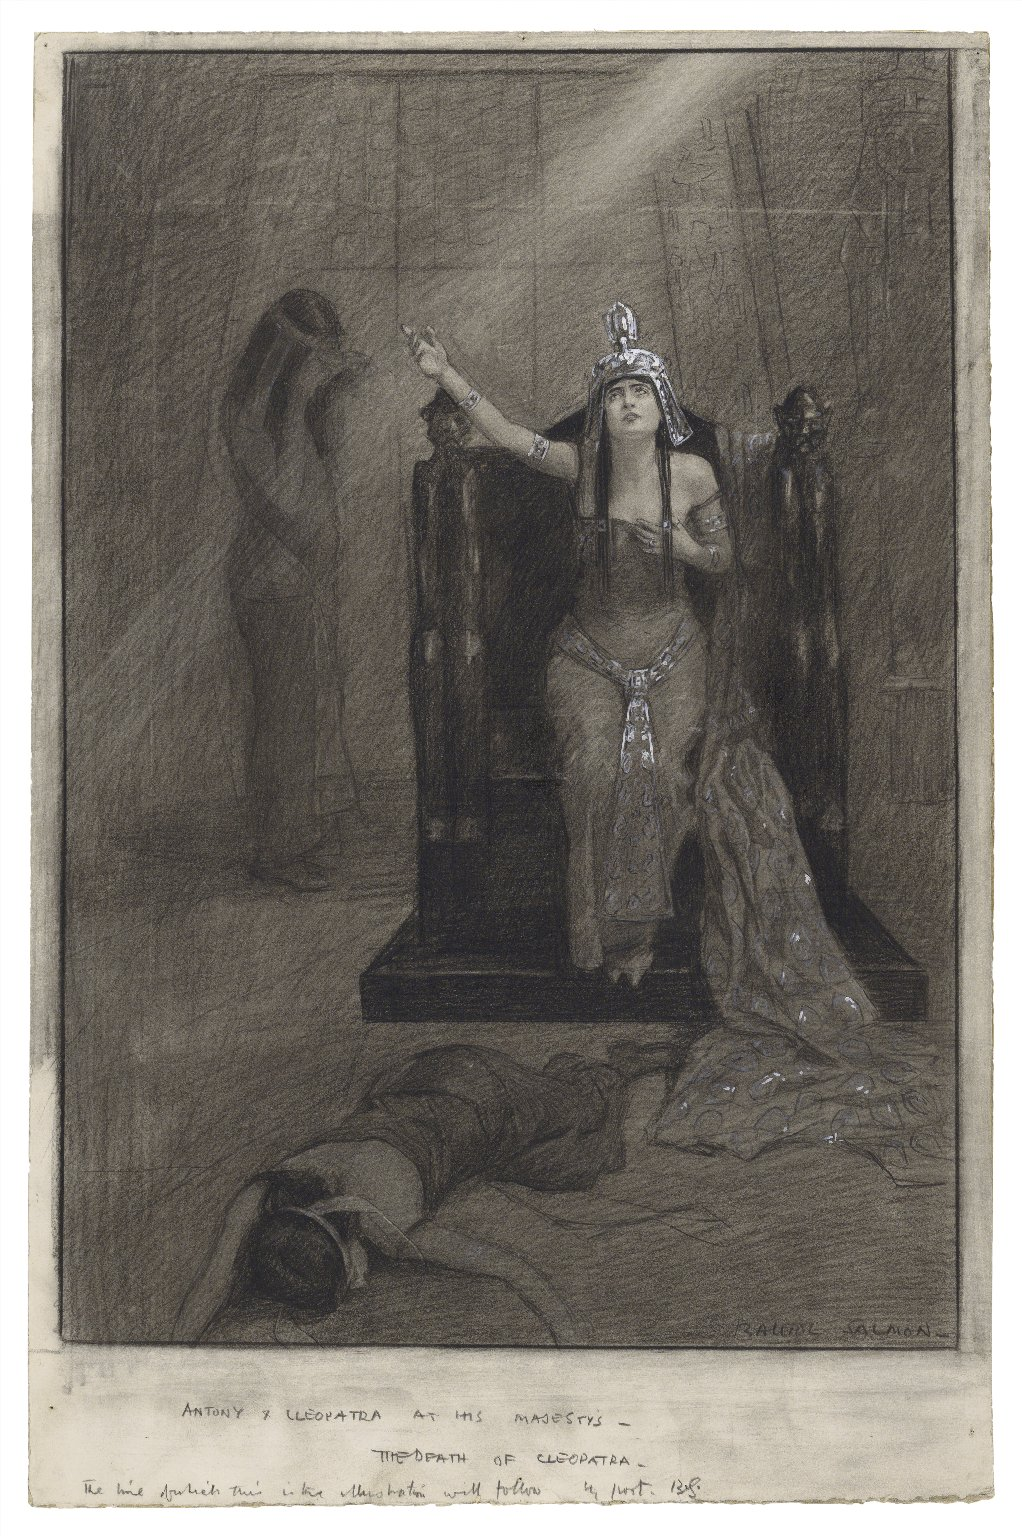 Antony & Cleopatra at His Majesty's - the death of Cleopatra [graphic] / Balliol Salmon.